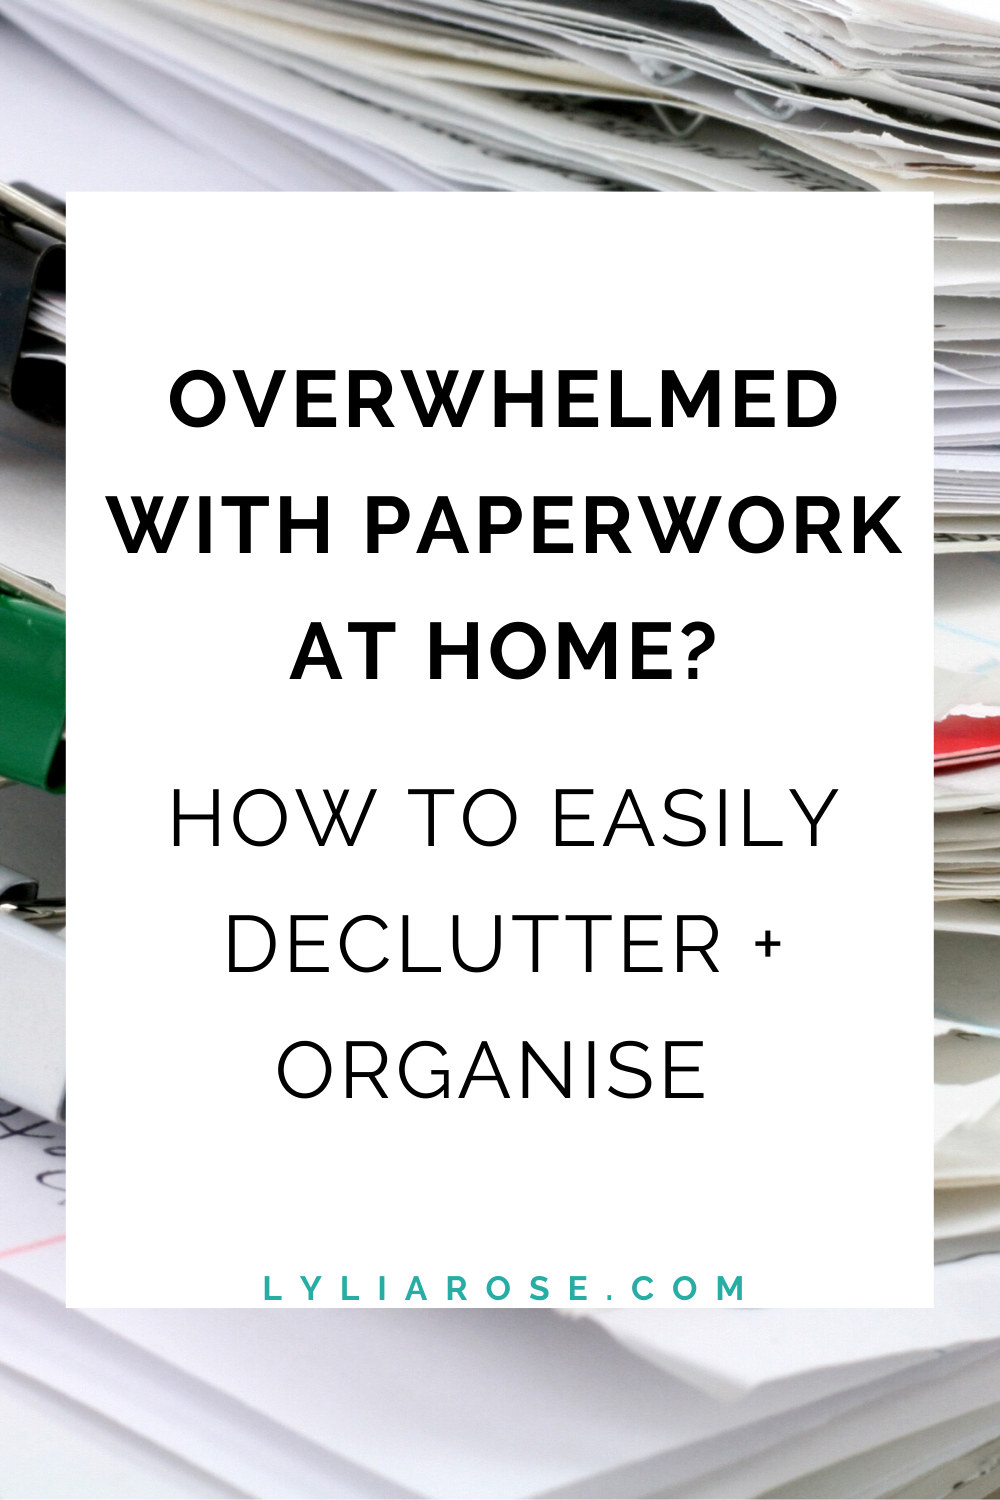 Overwhelmed with paperwork at home_ How to easily declutter + organise (2